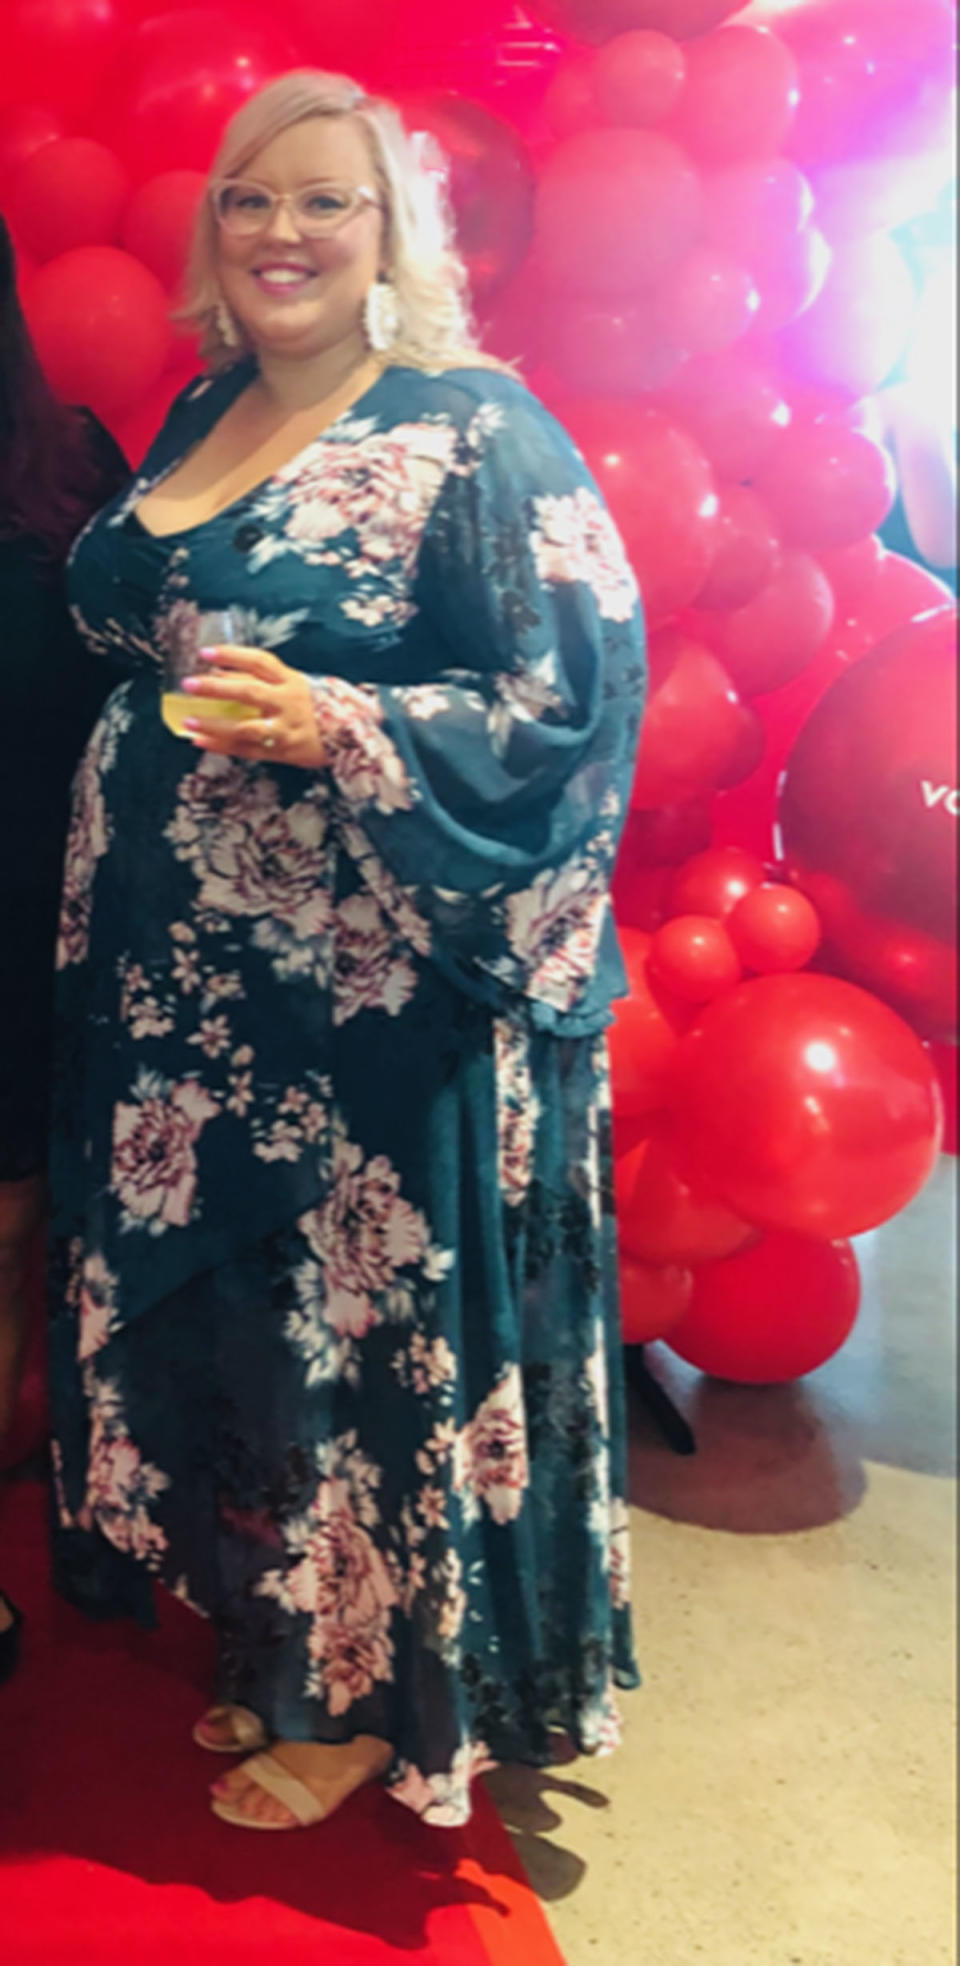 A woman wearing a long floral print dress in front of red balloons